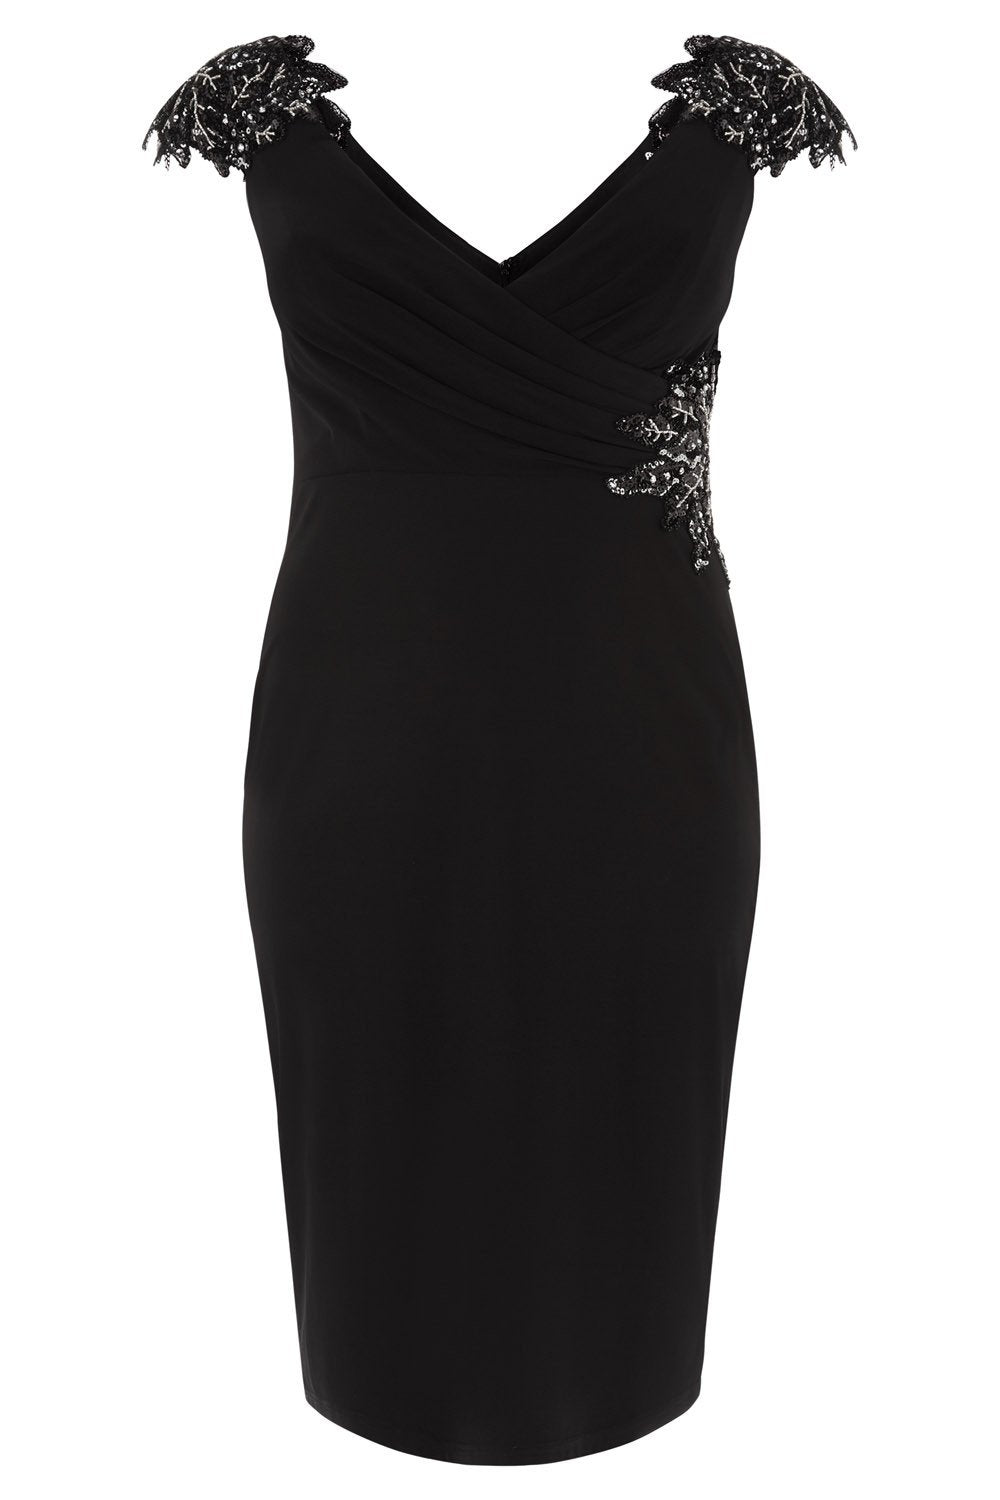 10327 - Dynasty Curve Black Cocktail Dress